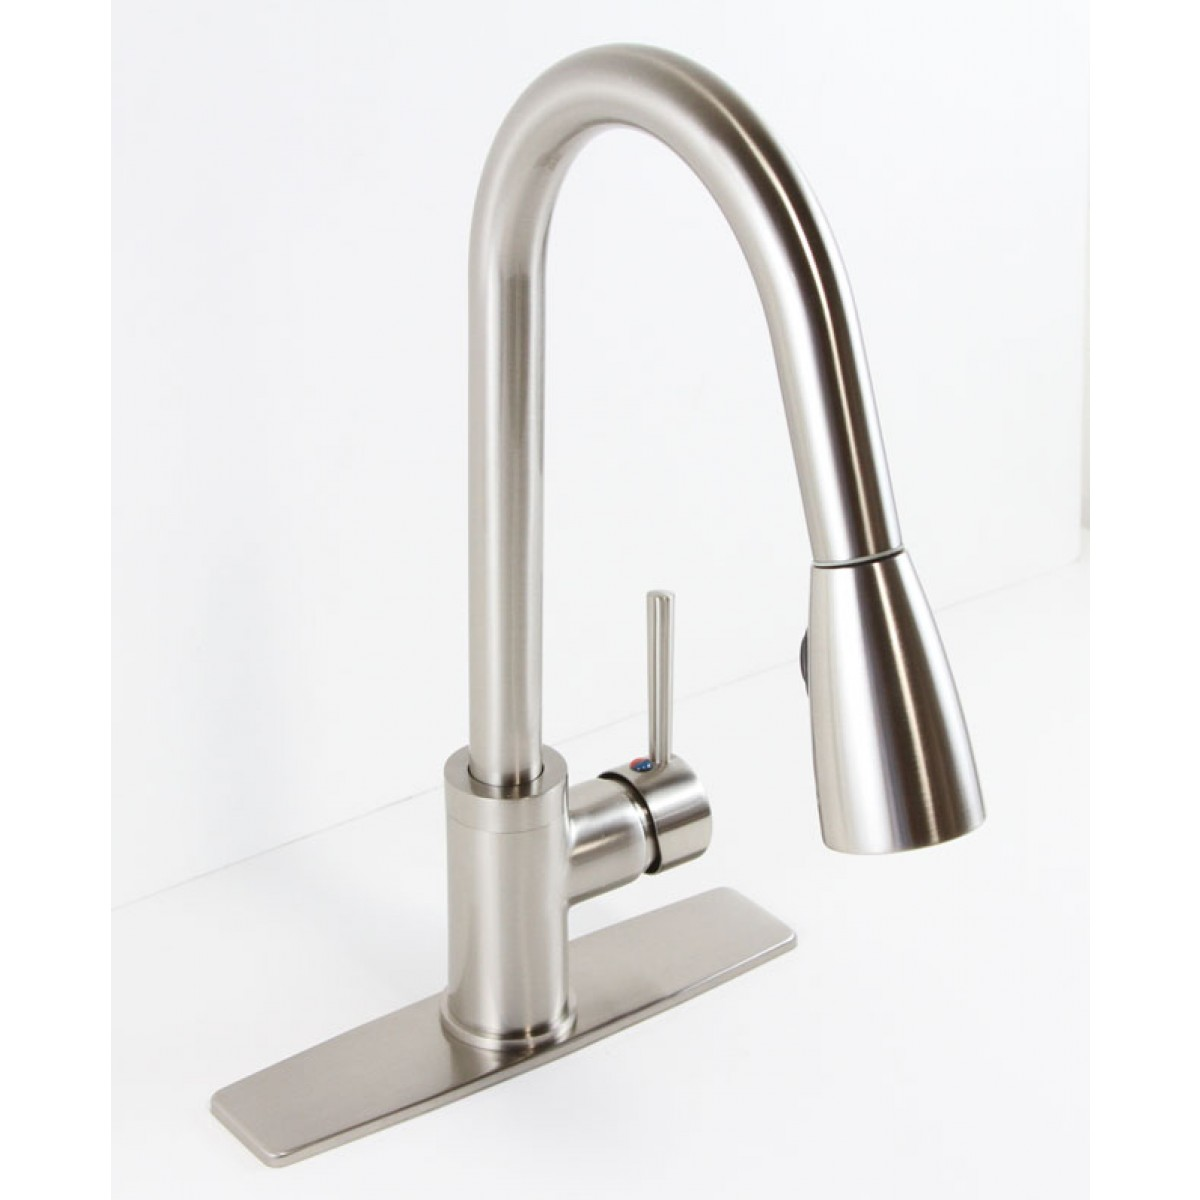 Tub Faucet Cover New Bathroom Automatic Hands Touch Free Sensor Water Ta Just Assumed That